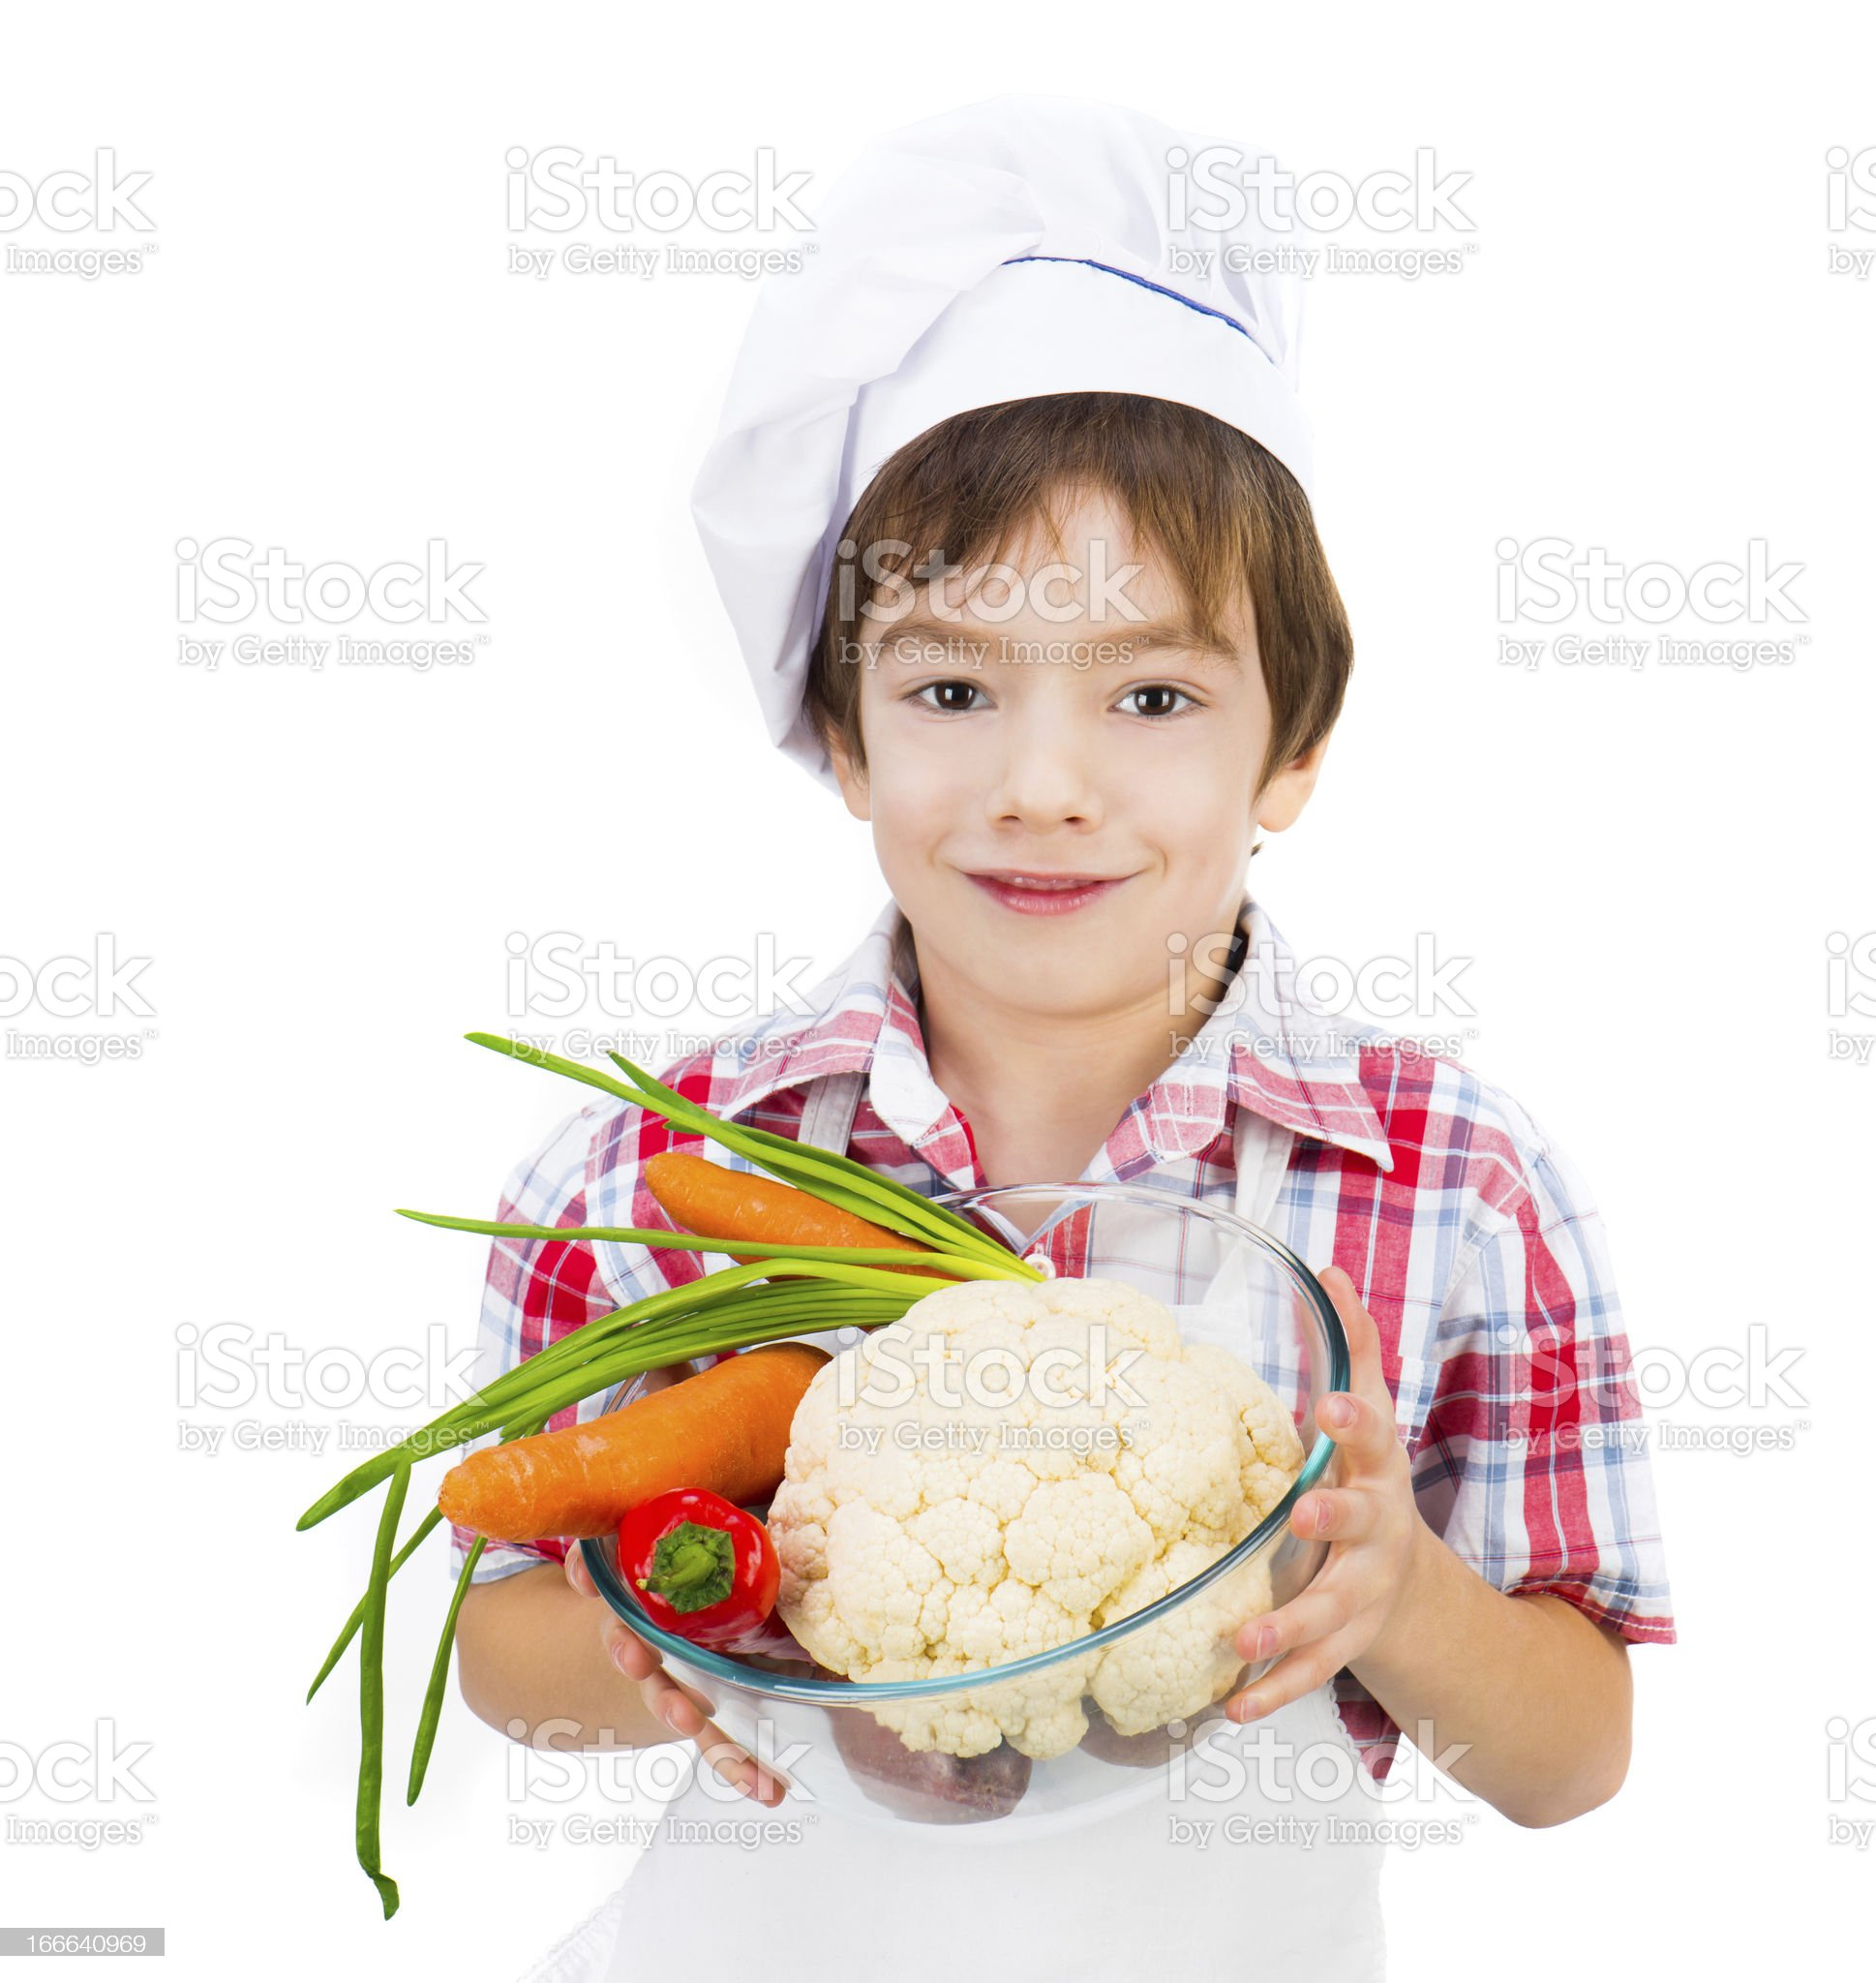 boy with vegetables royalty-free stock photo